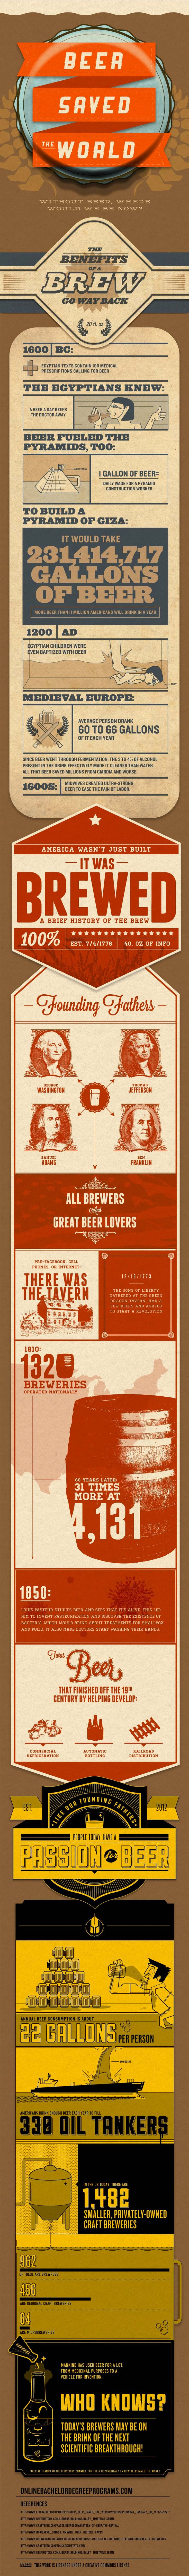 Beer: Not Only Delicious, But World-Saving As Well